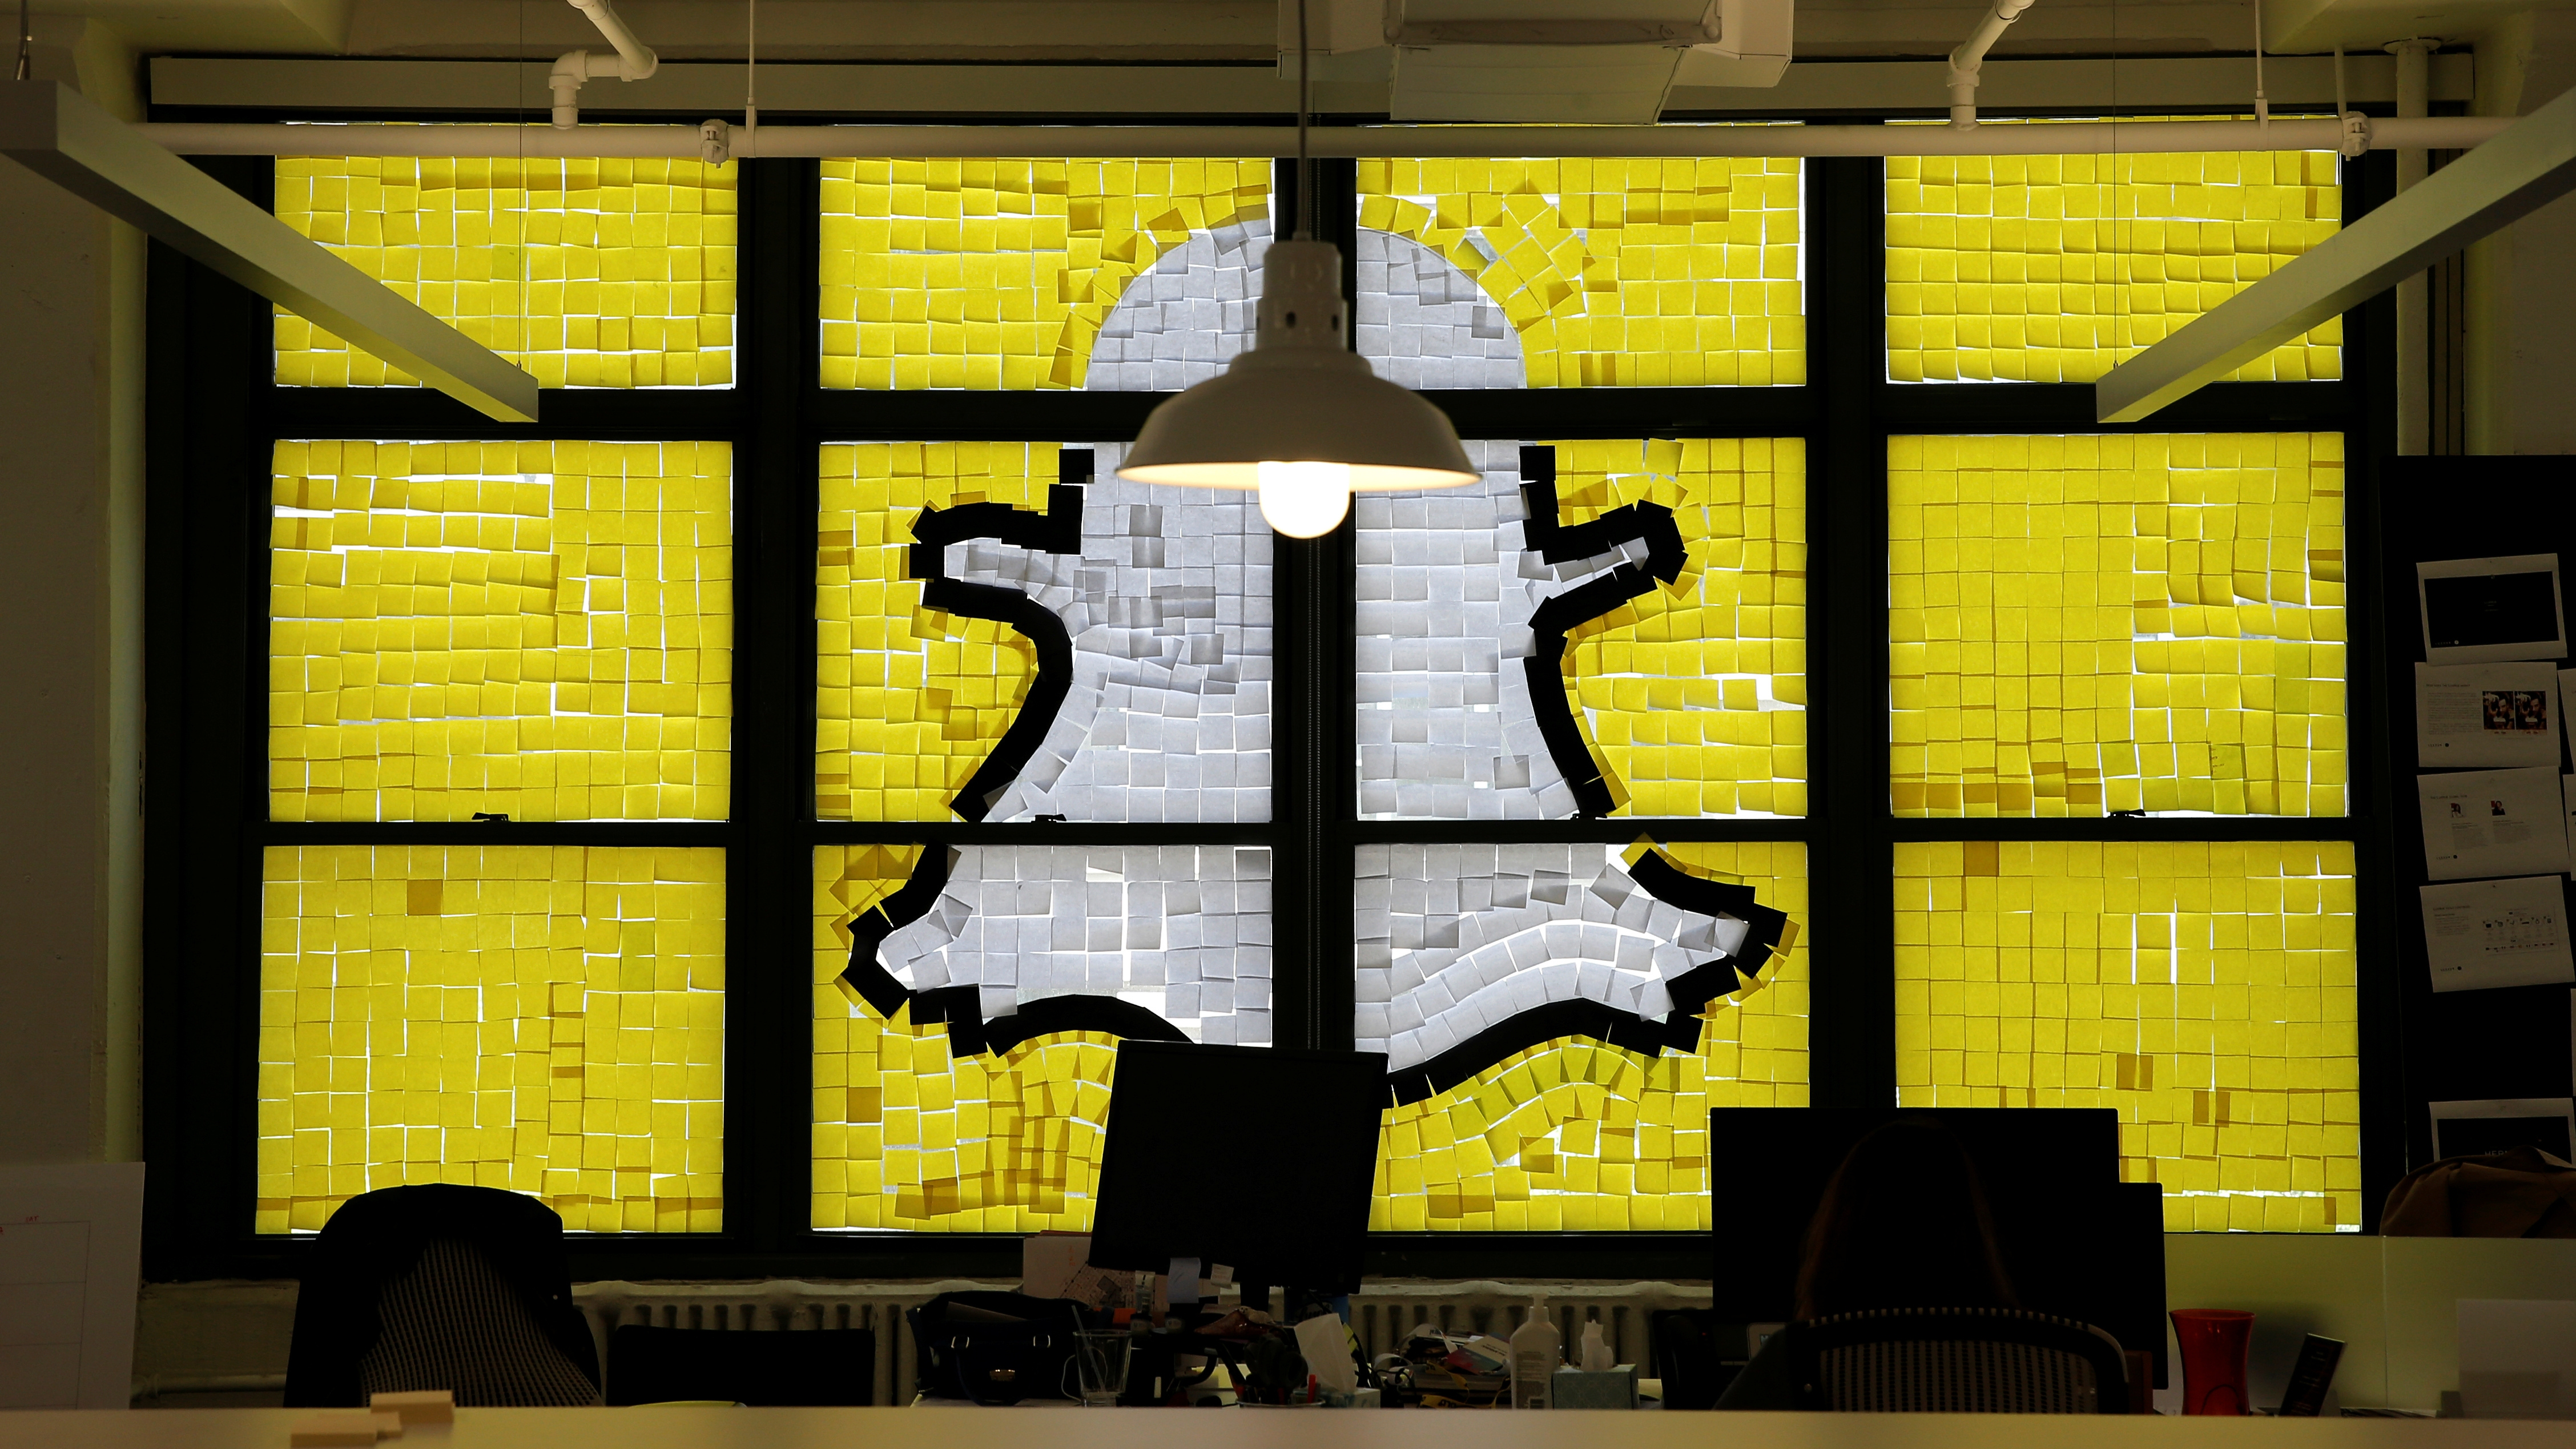 "An image of the Snapchat logo created with Post-it notes is seen in the windows of Havas Worldwide at 200 Hudson Street in lower Manhattan, New York, U.S., May 18, 2016, where advertising agencies and other companies have started what is being called a ""Post-it note war"" with employees creating colorful images in their windows with Post-it notes. REUTERS/Mike Segar"